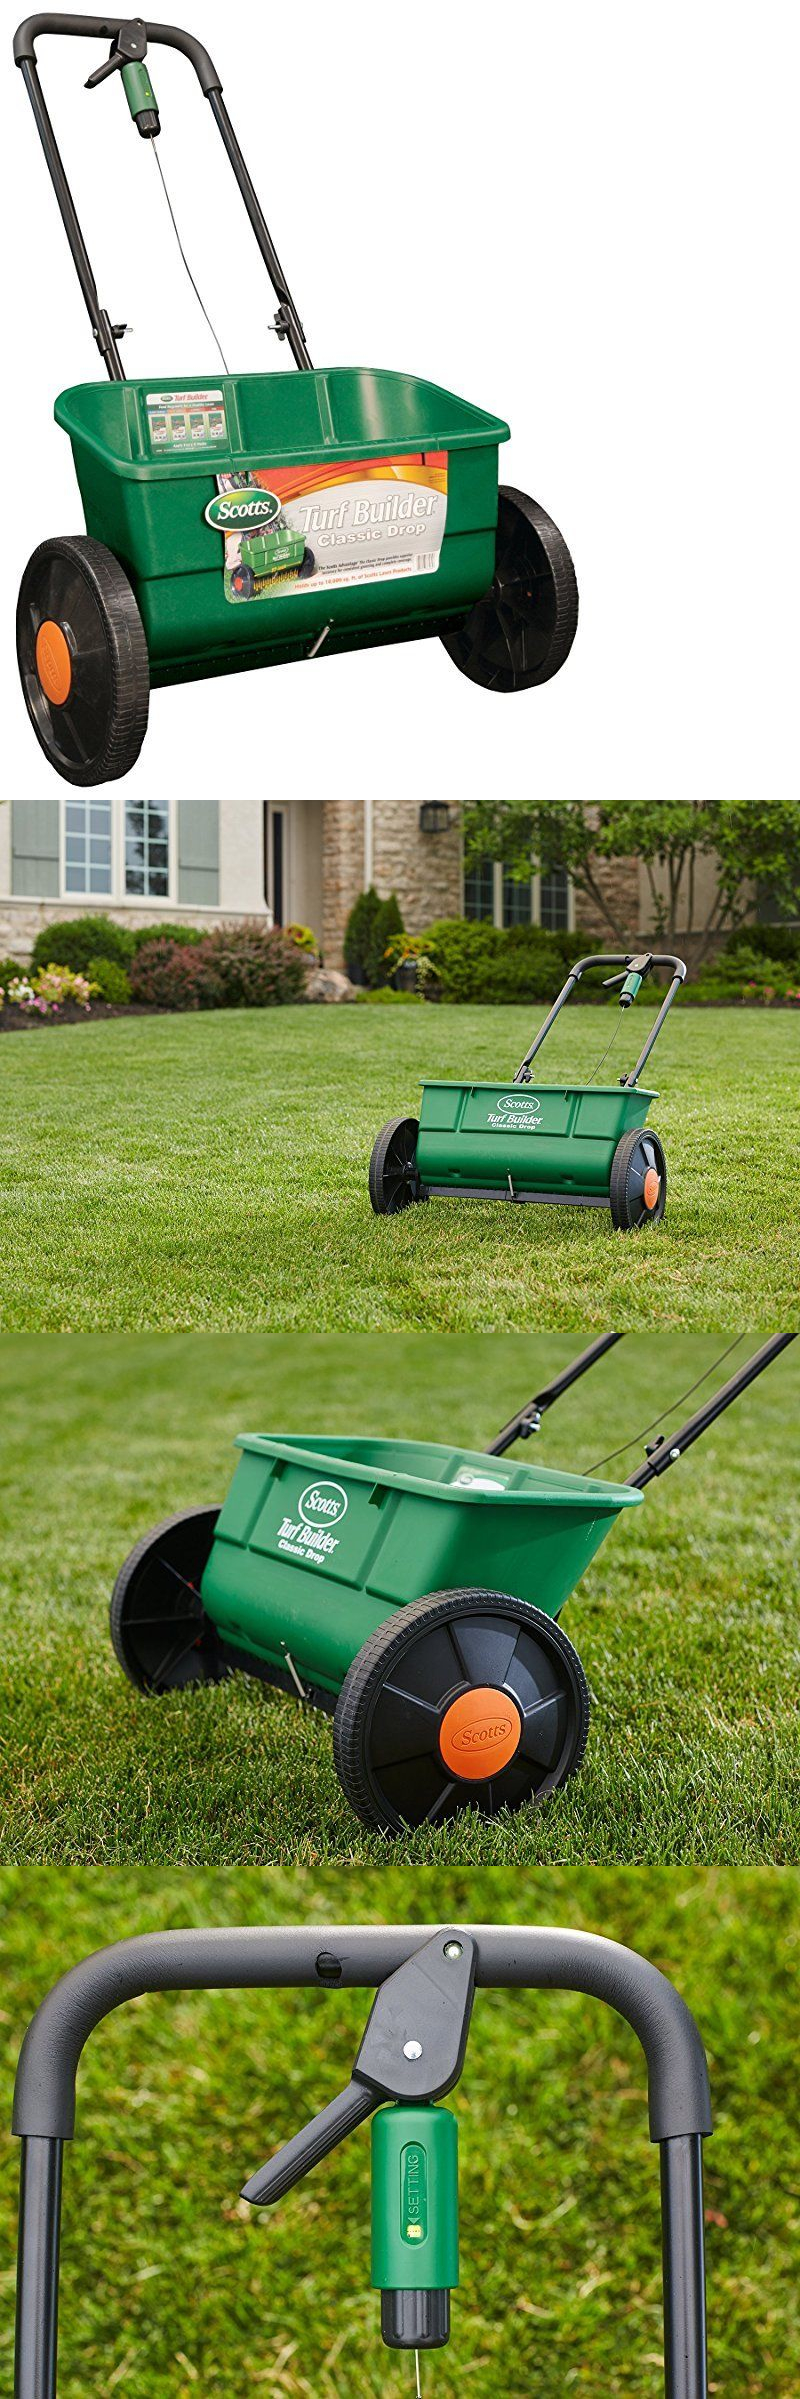 Seeders and Spreaders 118869: Scotts Turf Builder Classic Drop Spreader, (Up To 10,000-Sq Ft) -> BUY IT NOW ONLY: $88.96 on eBay!